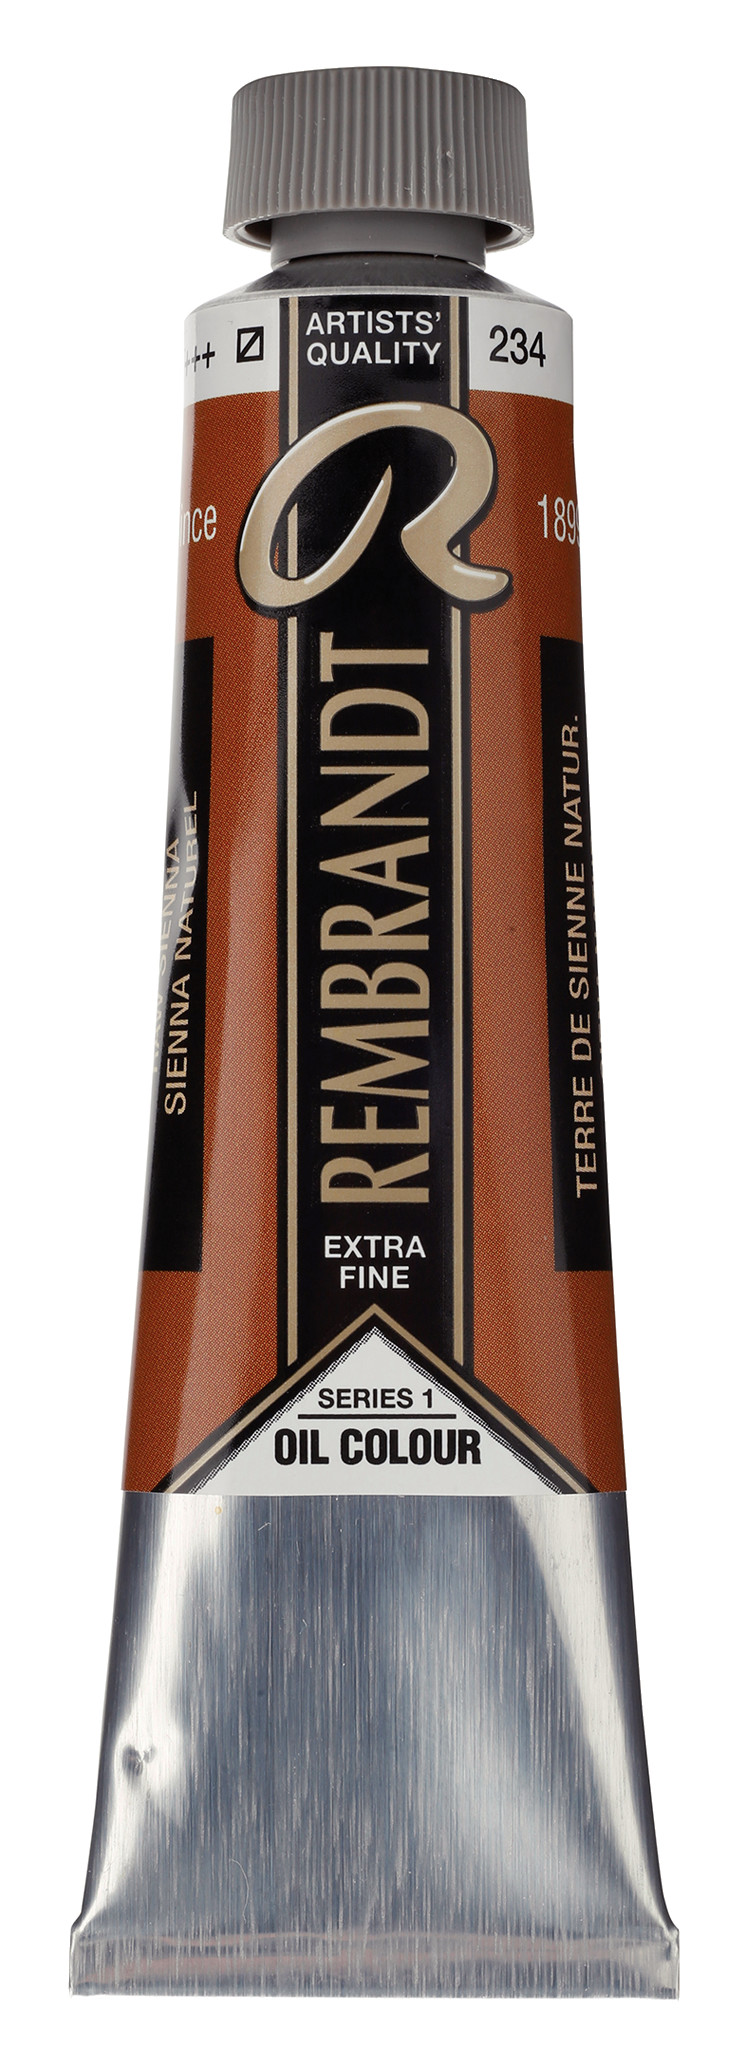 Rembrandt Oil colour Paint Raw Sienna (234) 40ml Tube